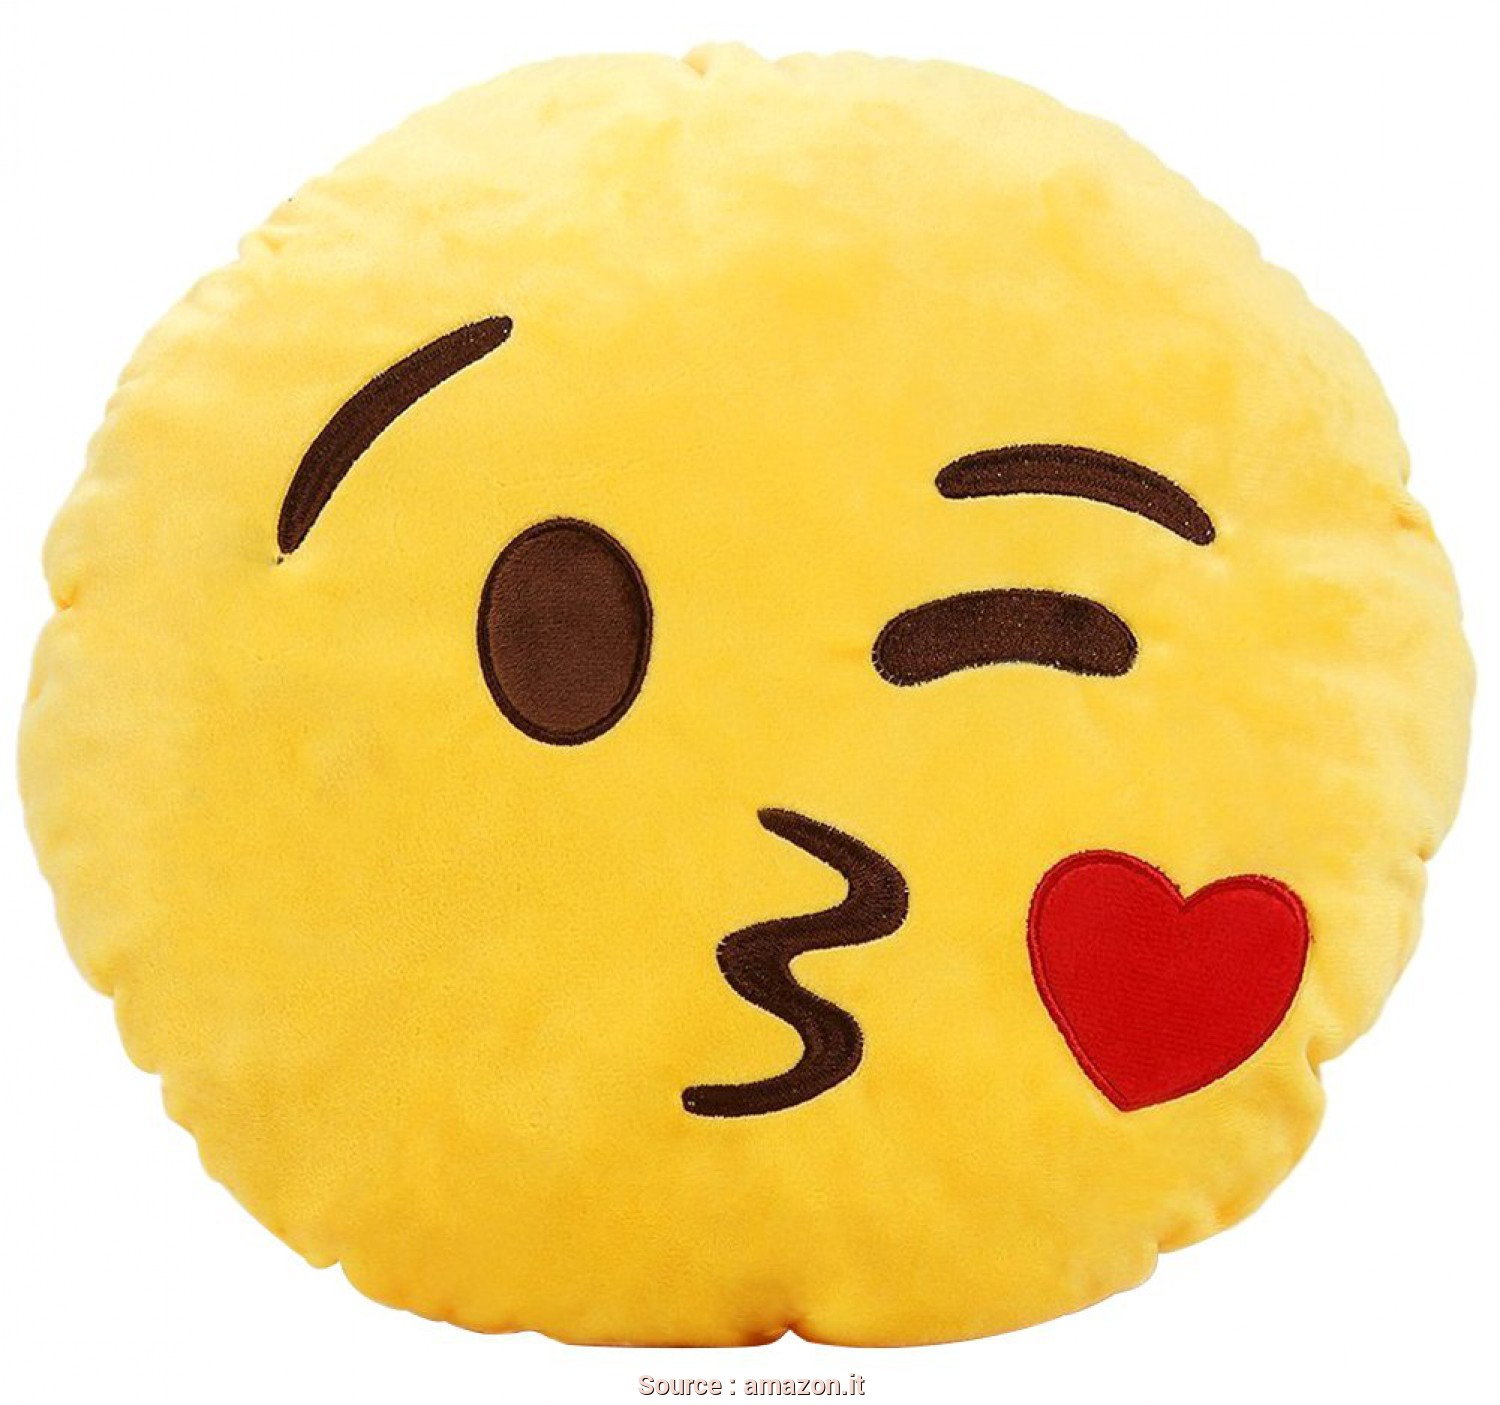 Cuscini Emoji Grandi, Bello Cute Peluche, Motivo: Smiley Emoji Smile, Cuscino Rotondo Cuscino